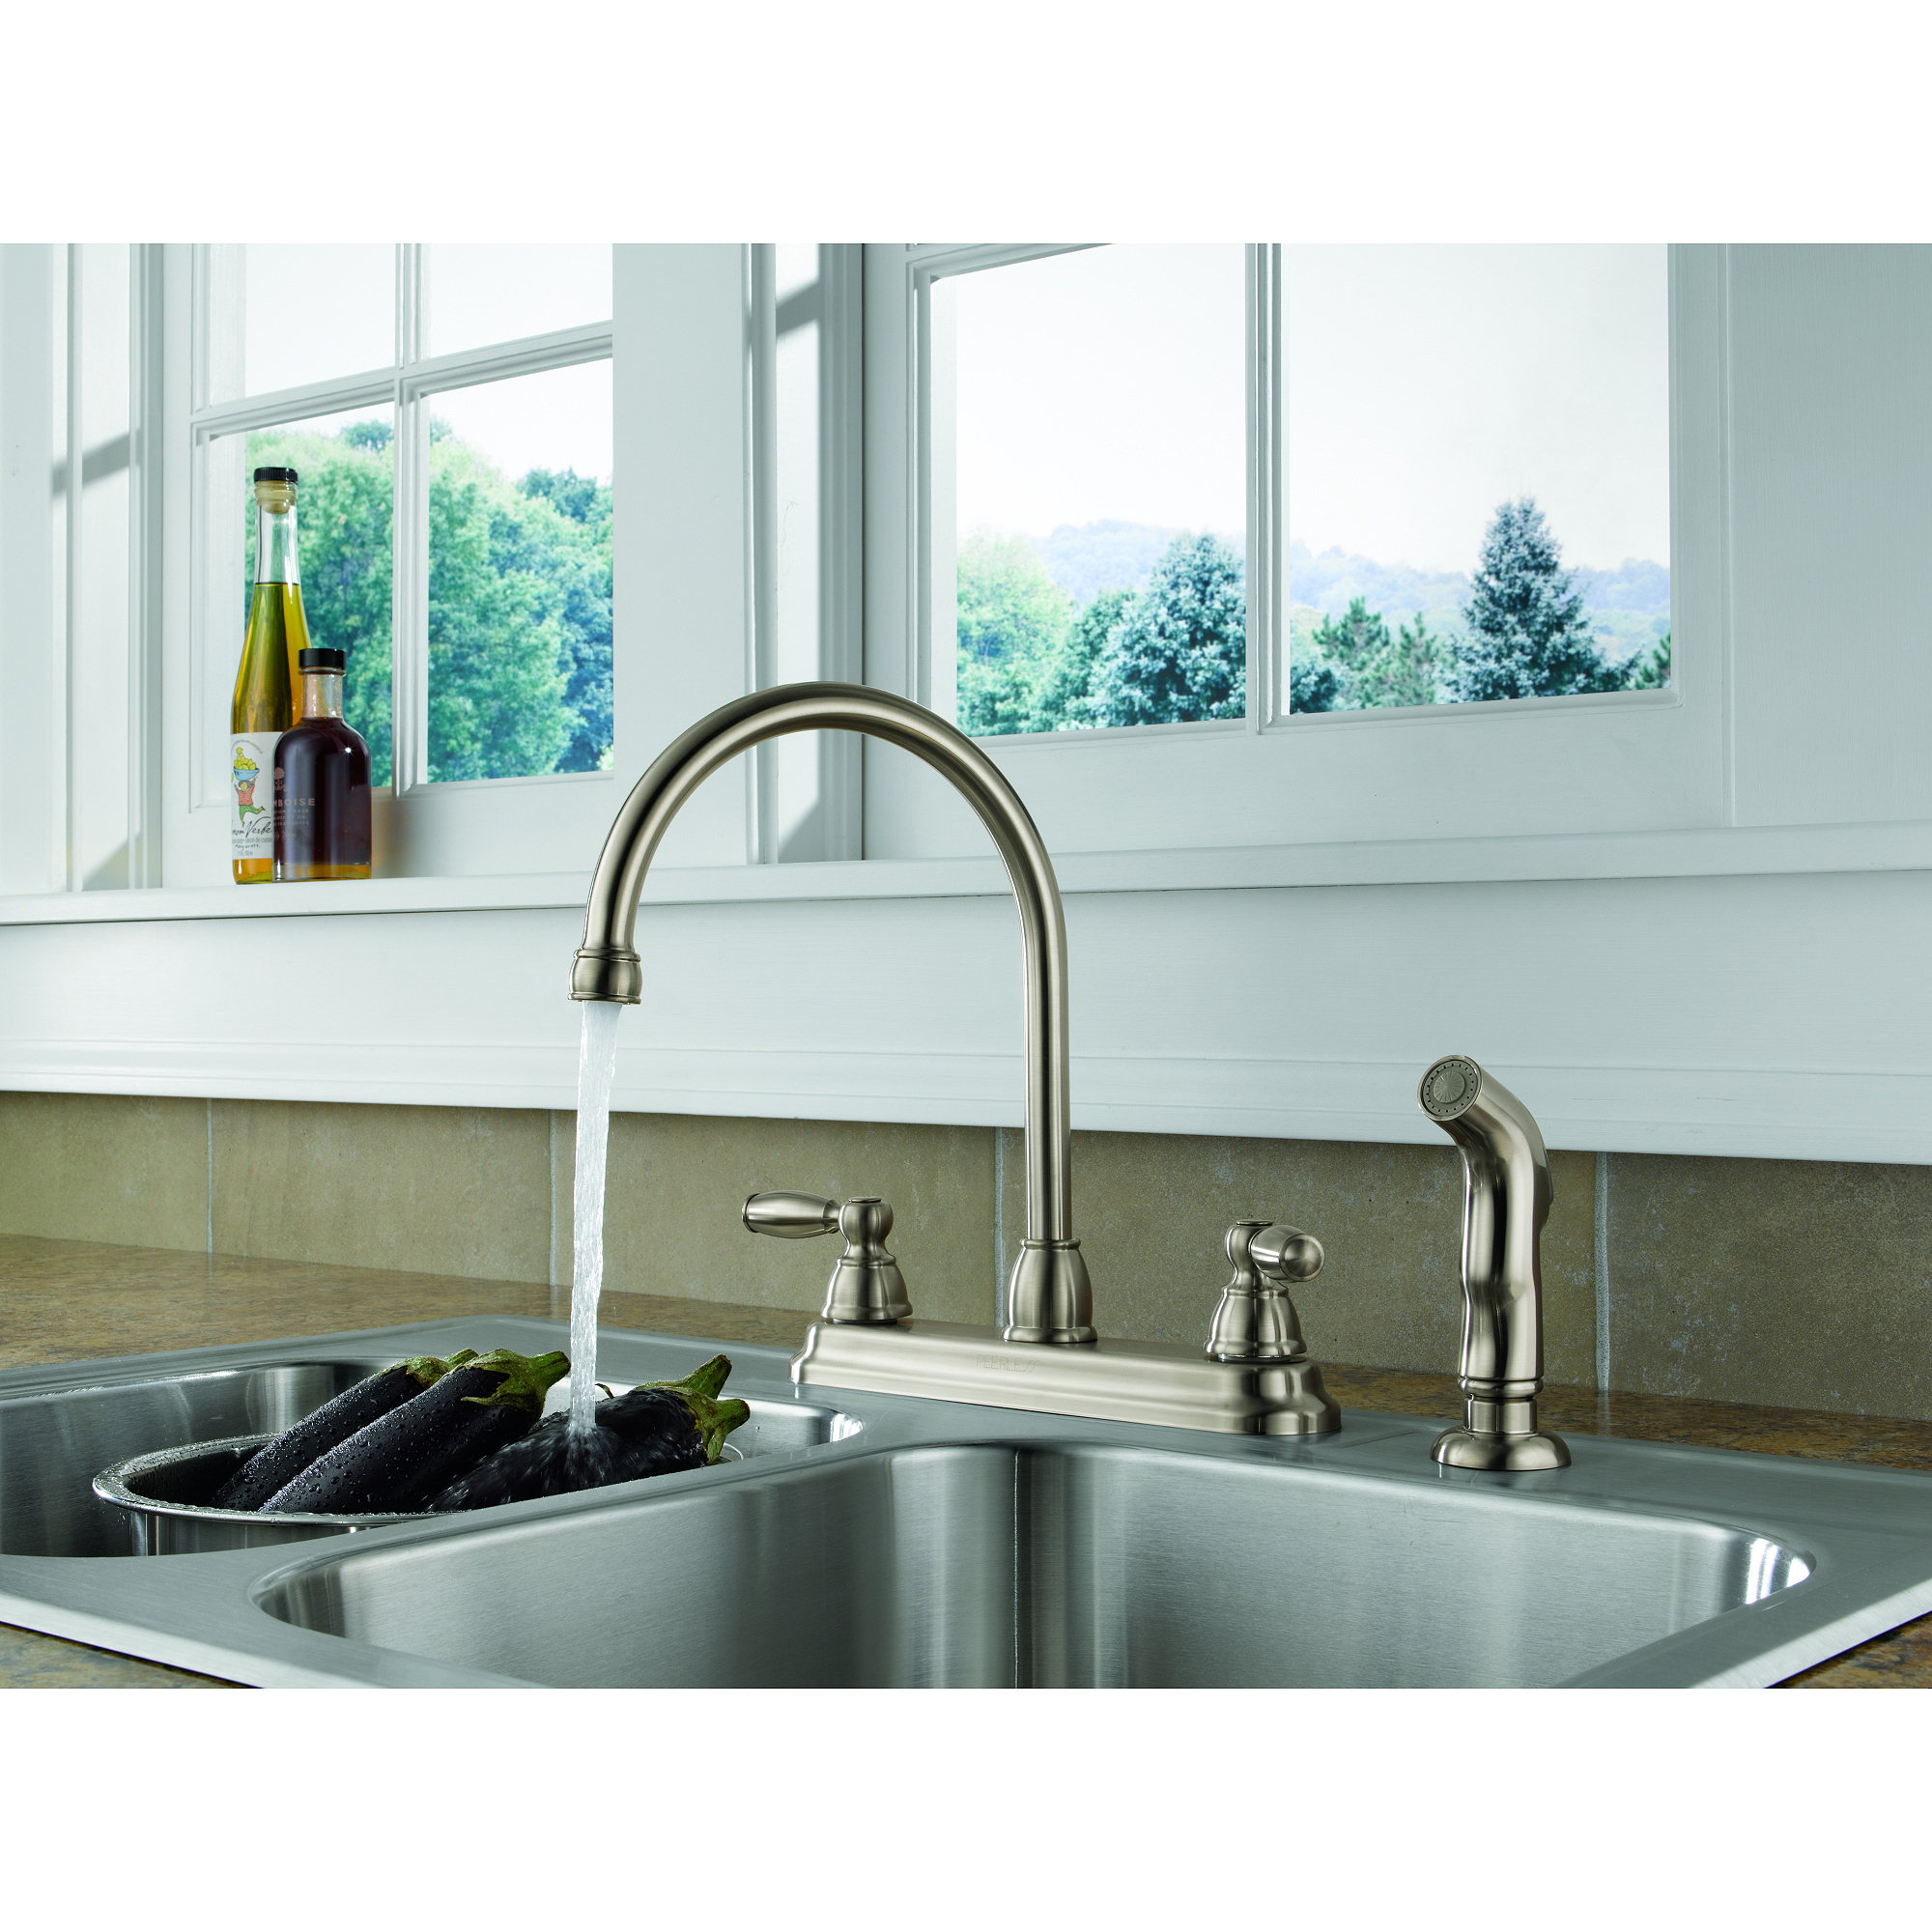 peerless 2-handle lavatory faucet with side spray, stainless steel